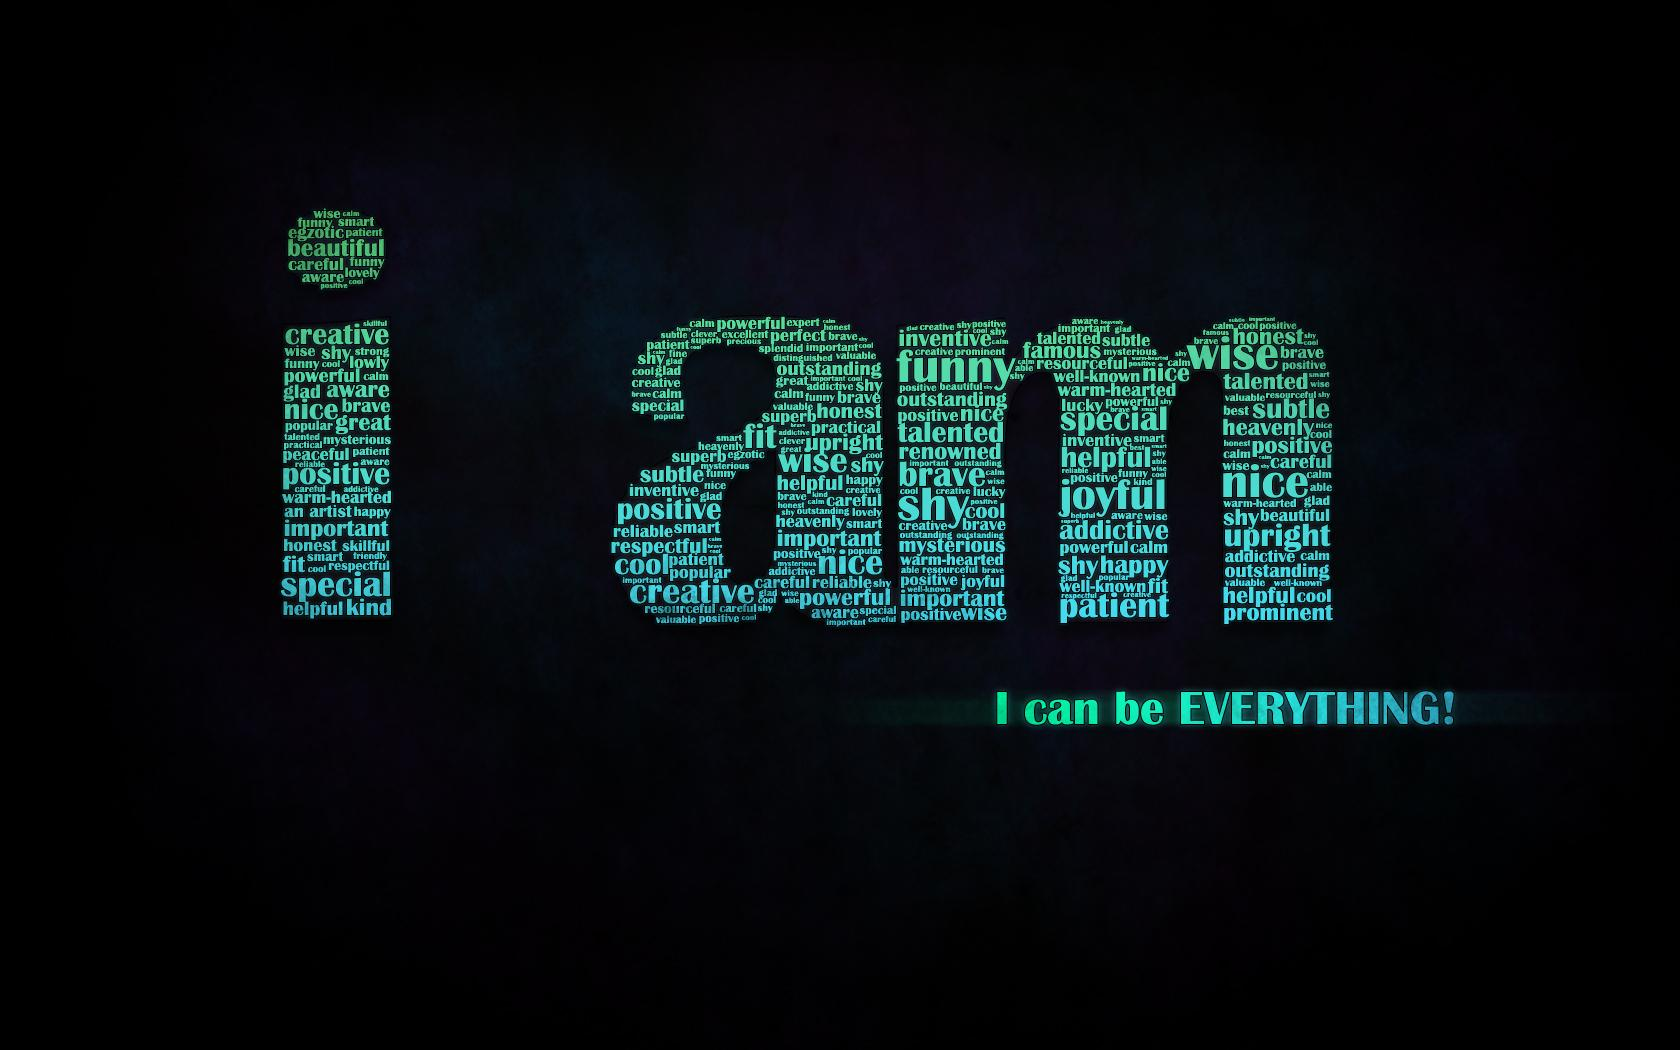 Обои I can be everything 1680x1050